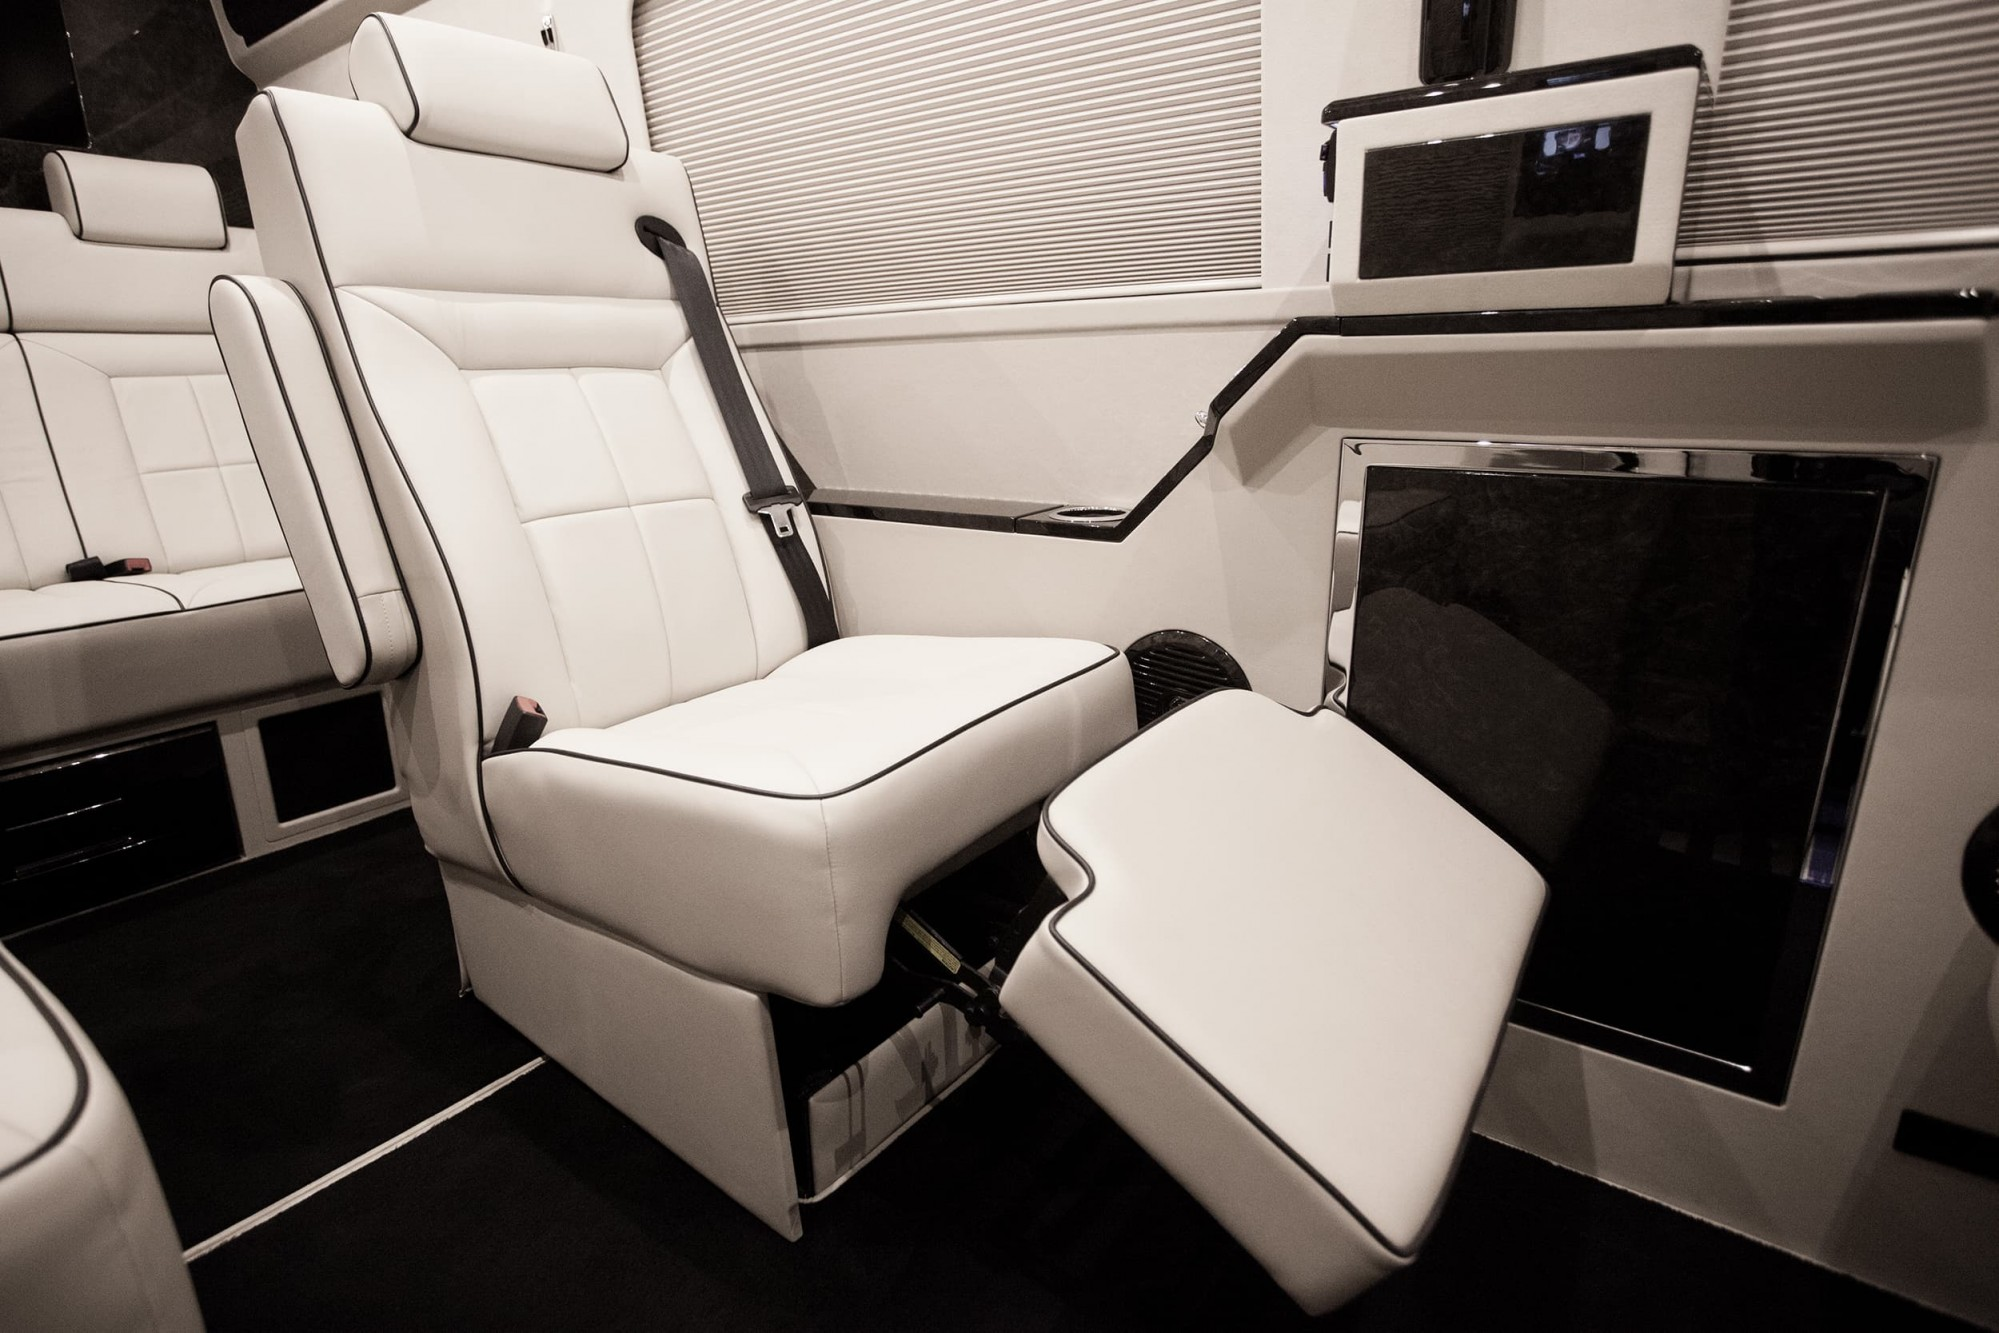 Six-way power executive seats in Italian leather with heat and massage